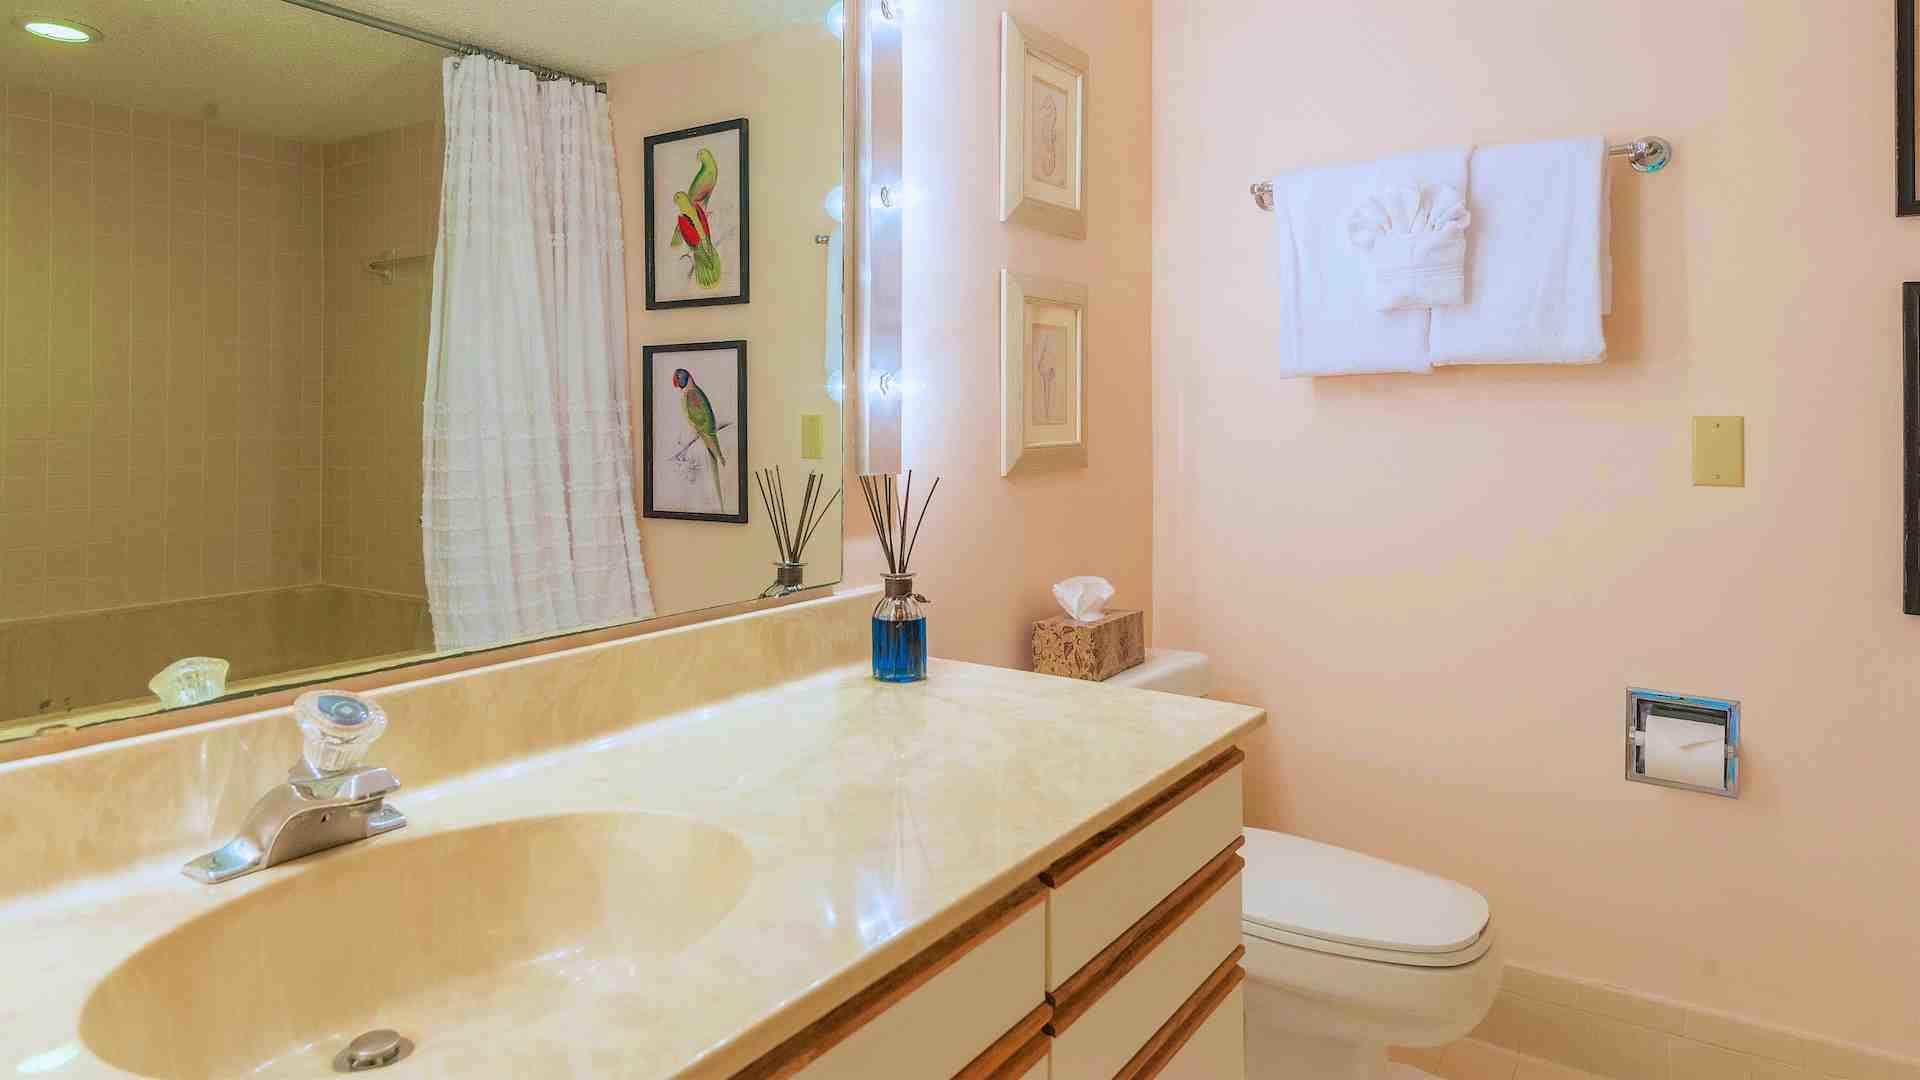 The second room of the master bathroom has a second vanity and commode...